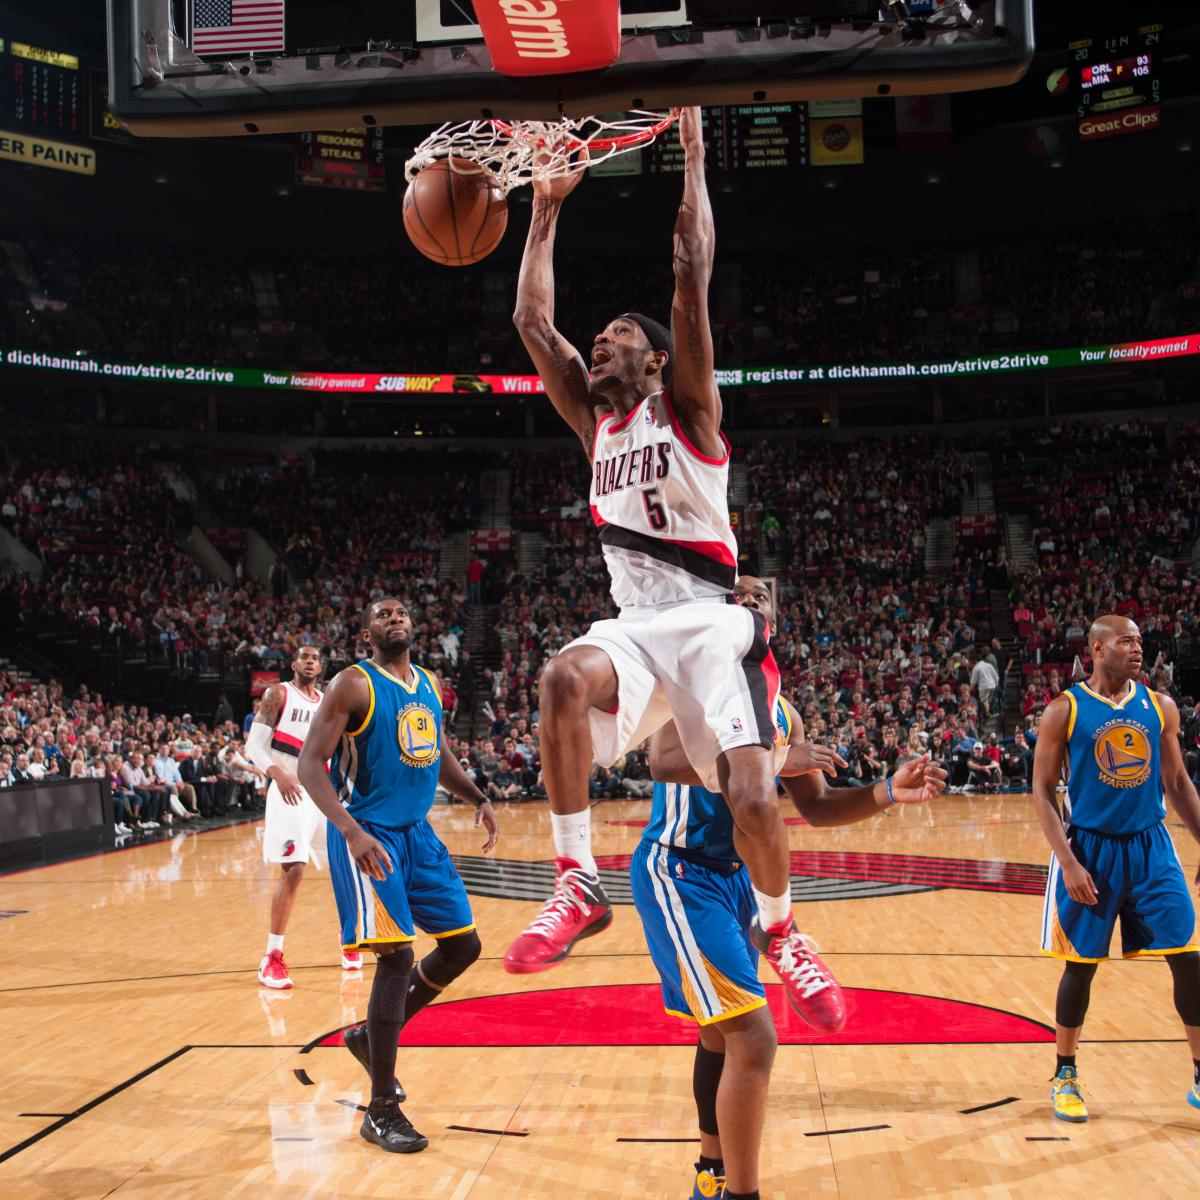 Warriors Come Out To Play Bleacher Report: Portland Trail Blazers' Will Barton Throws Down Sick 360